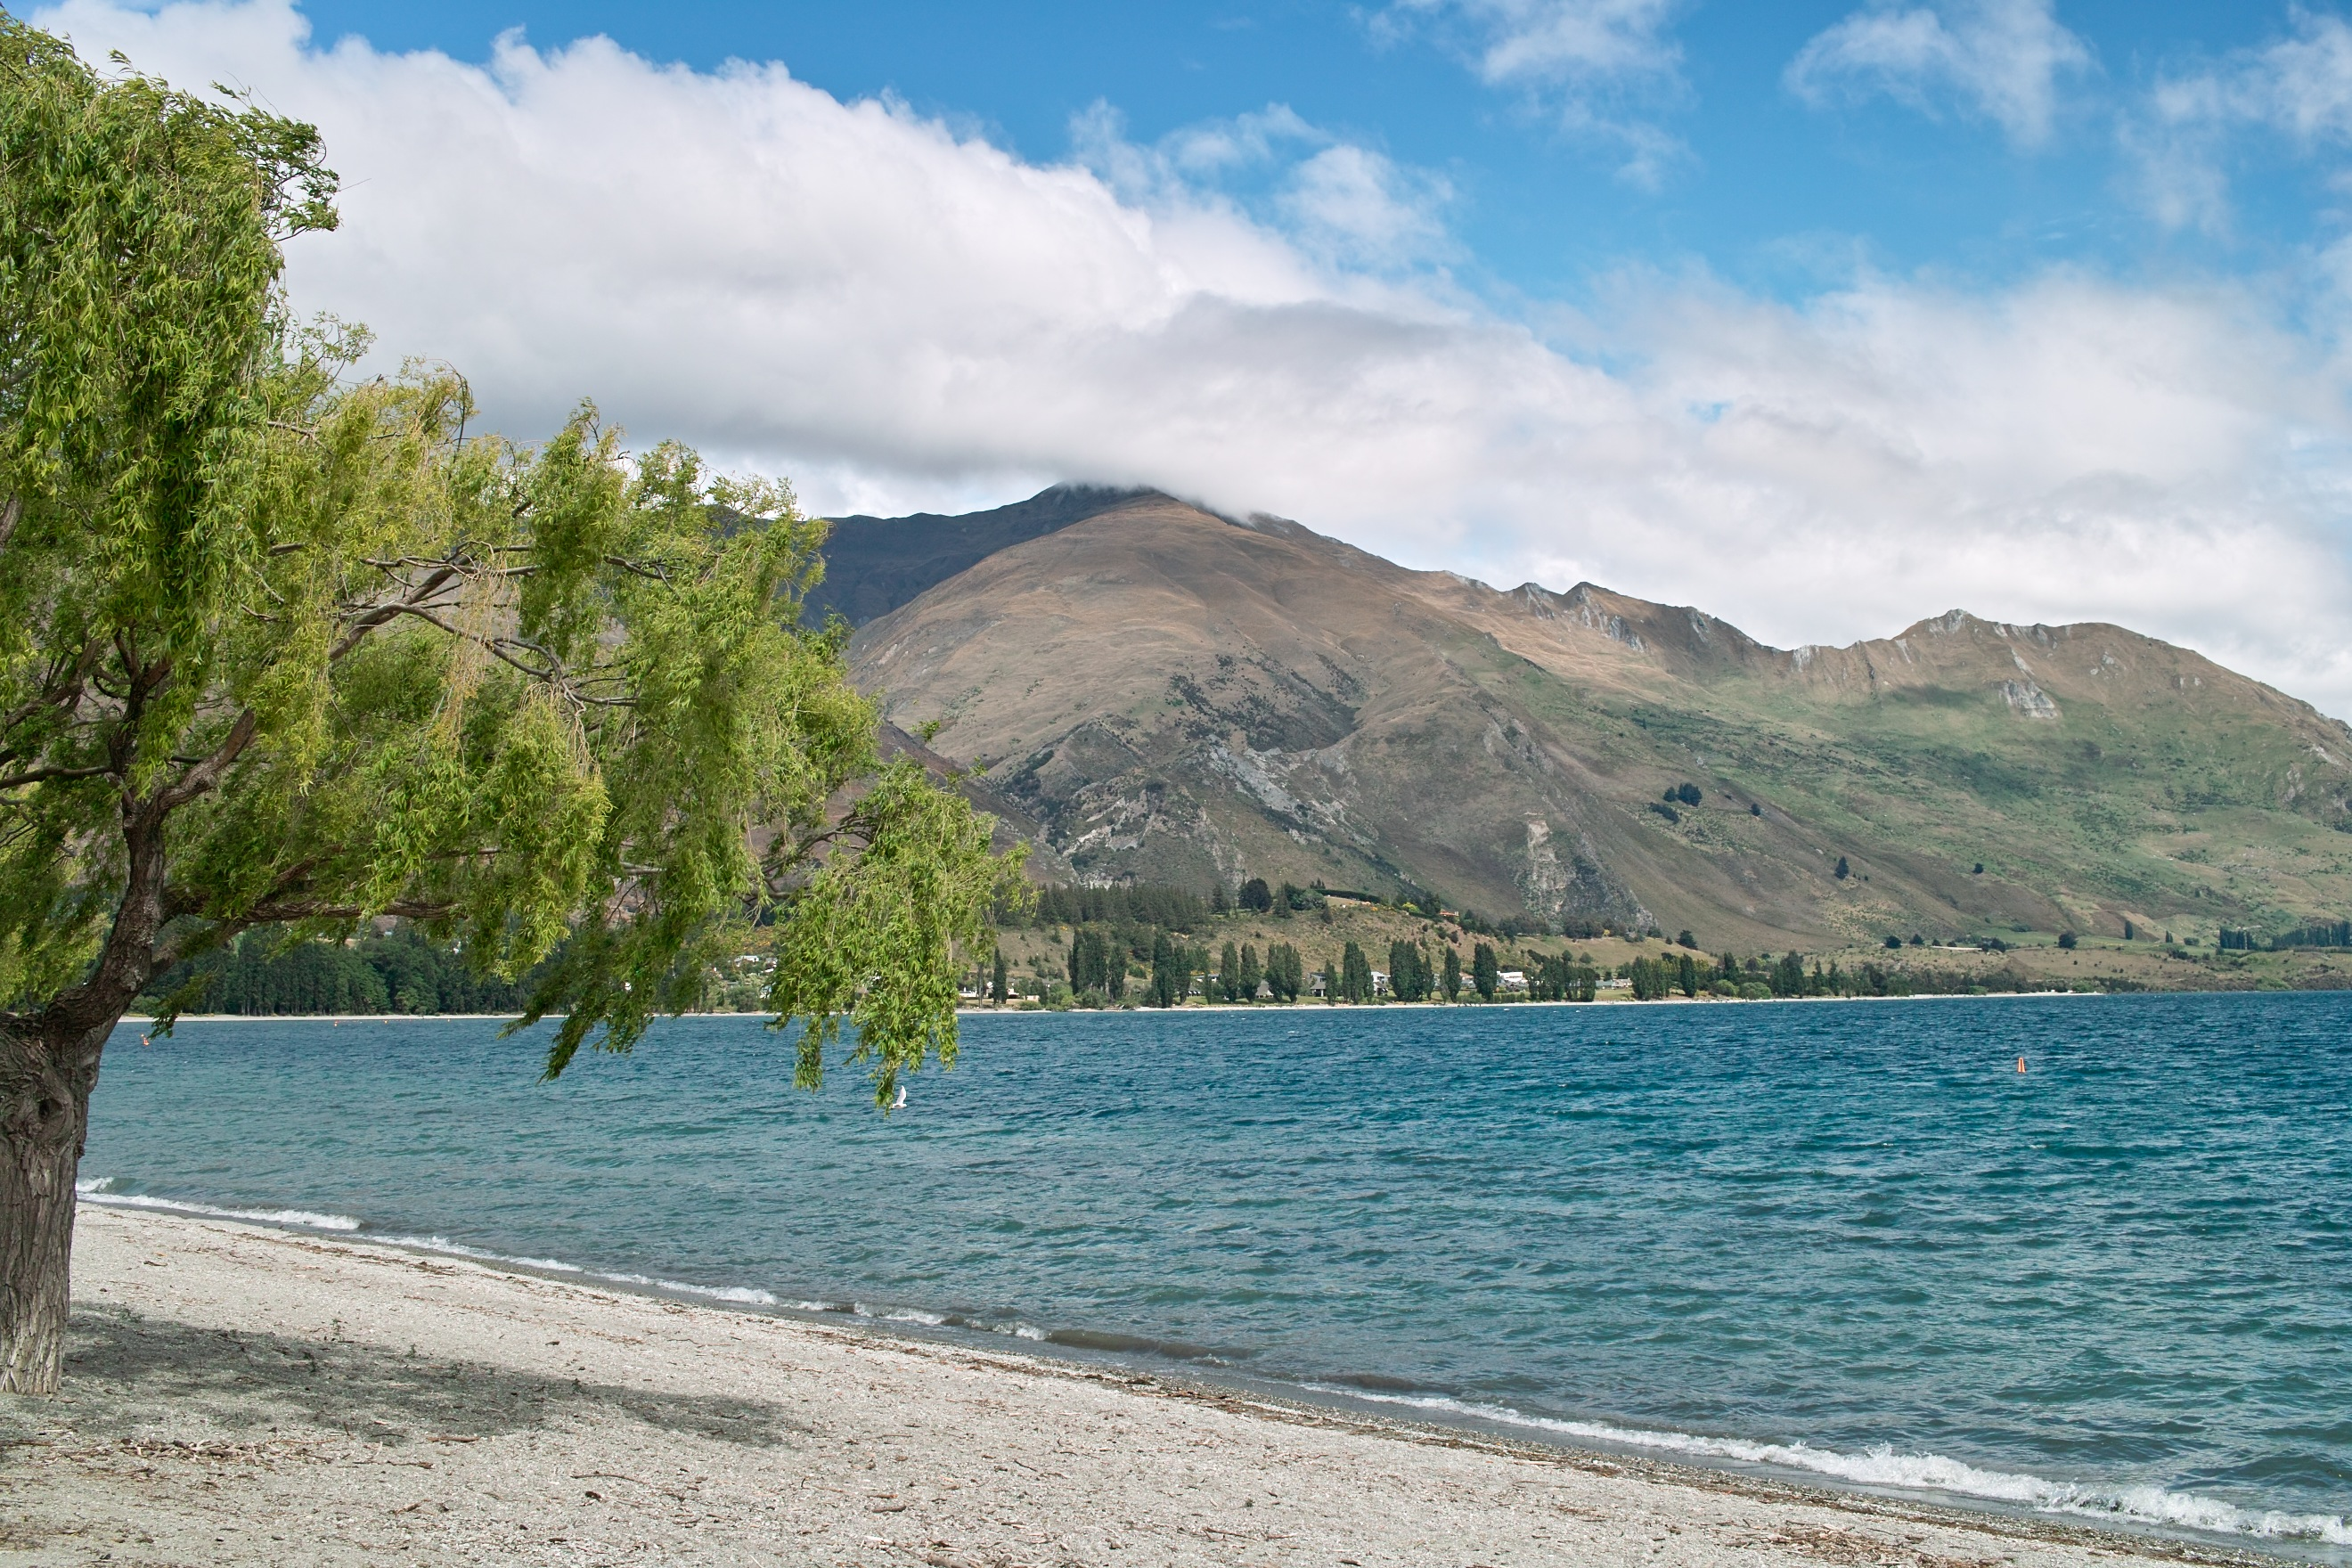 2076 - Morning view of Lake Wanaka from Wanaka waterfront